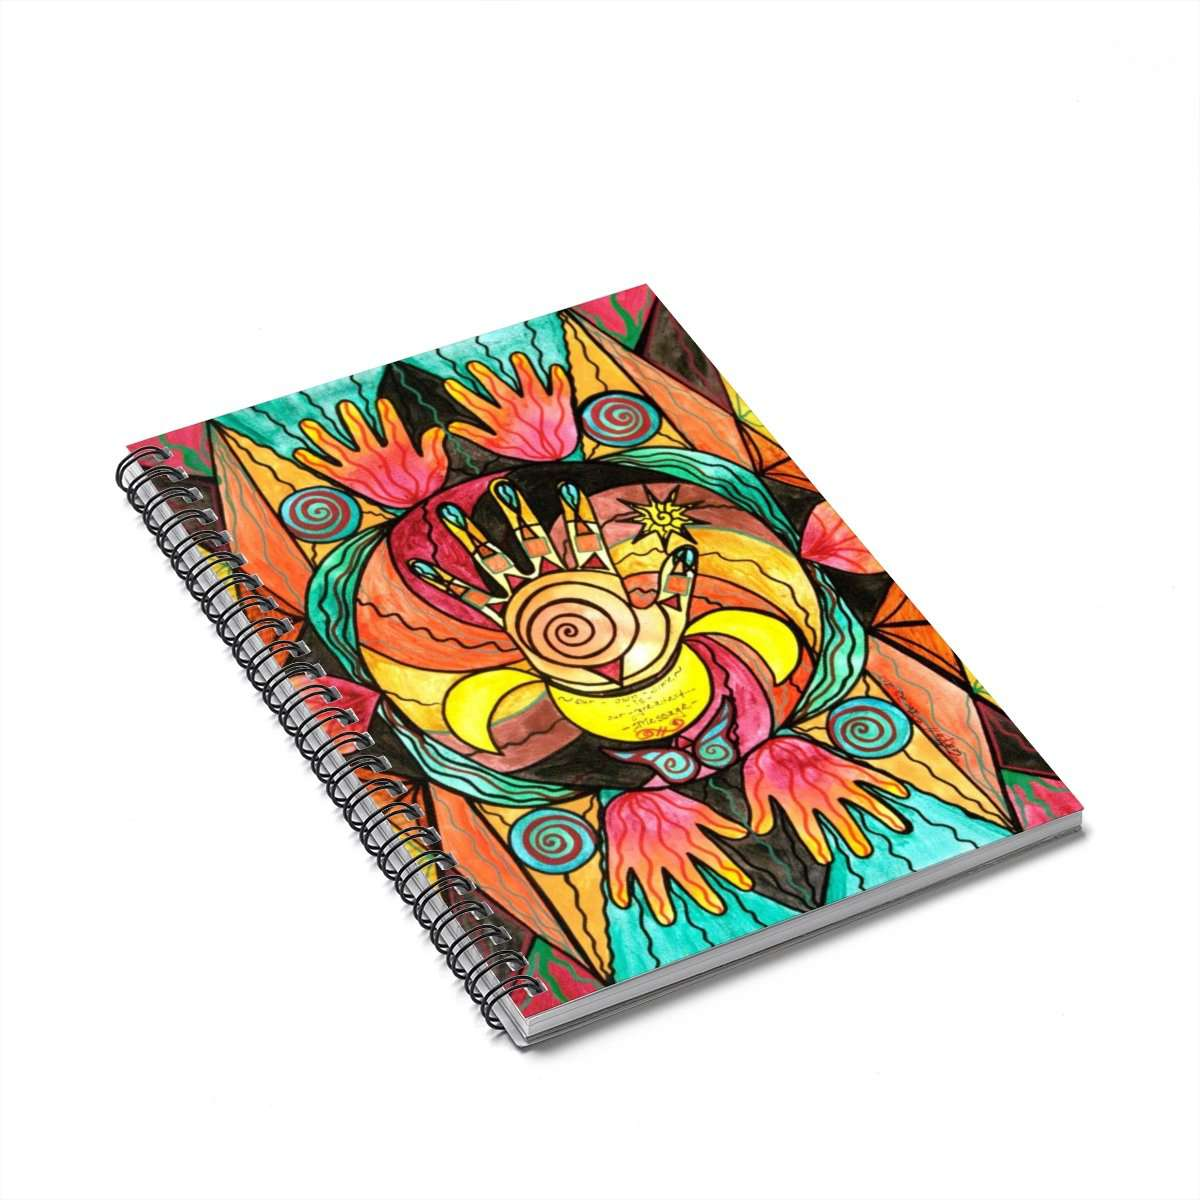 Thay Quote - Spiral Notebook